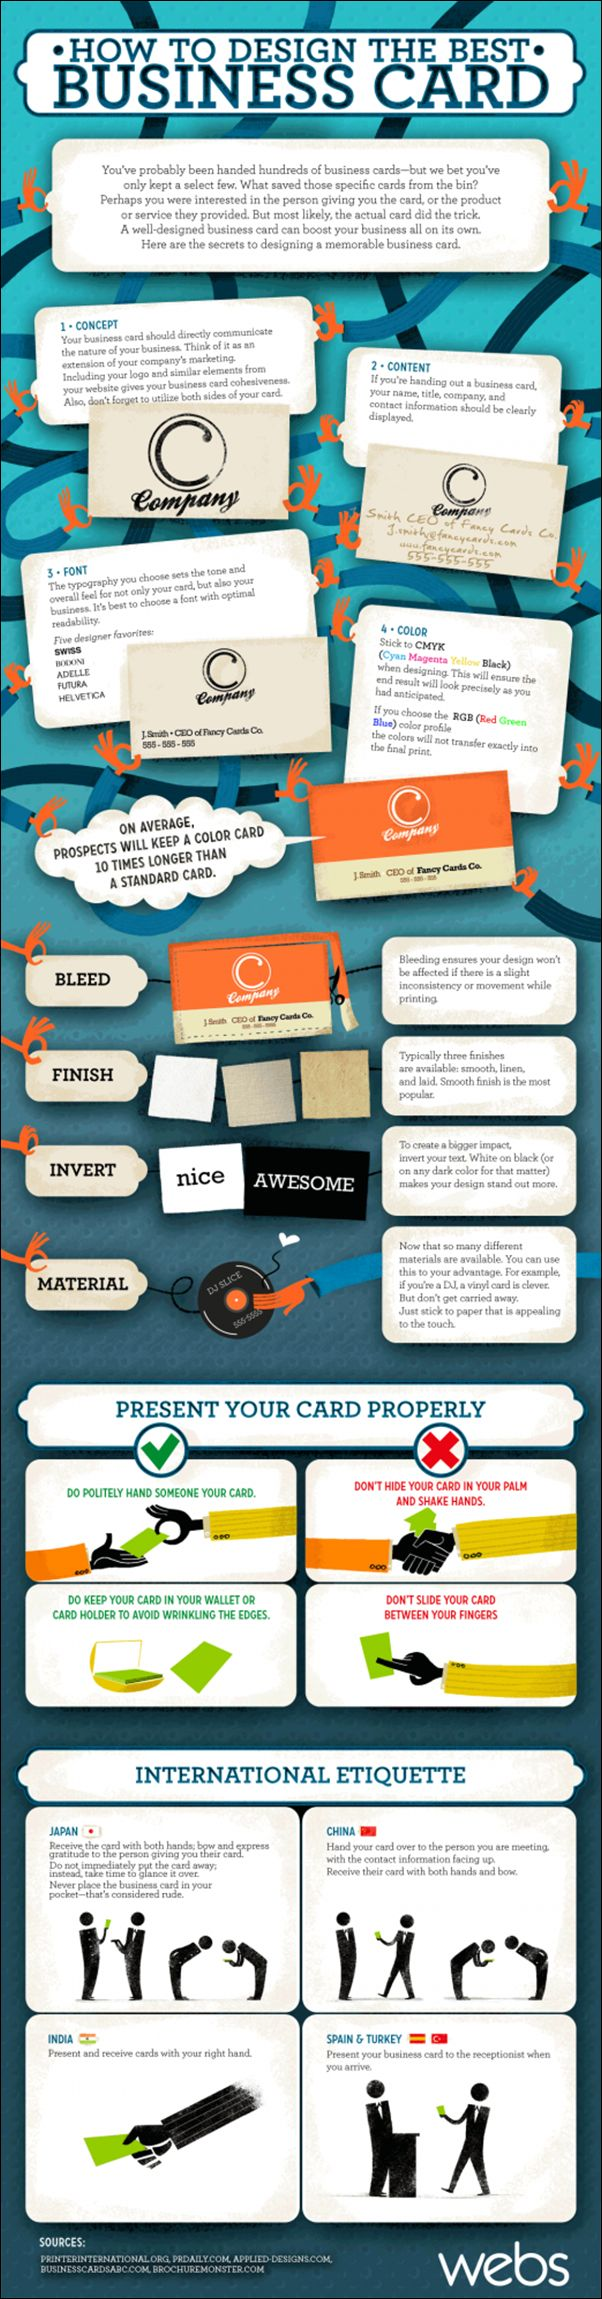 125 best Beautiful Business Cards images on Pinterest   Business ...